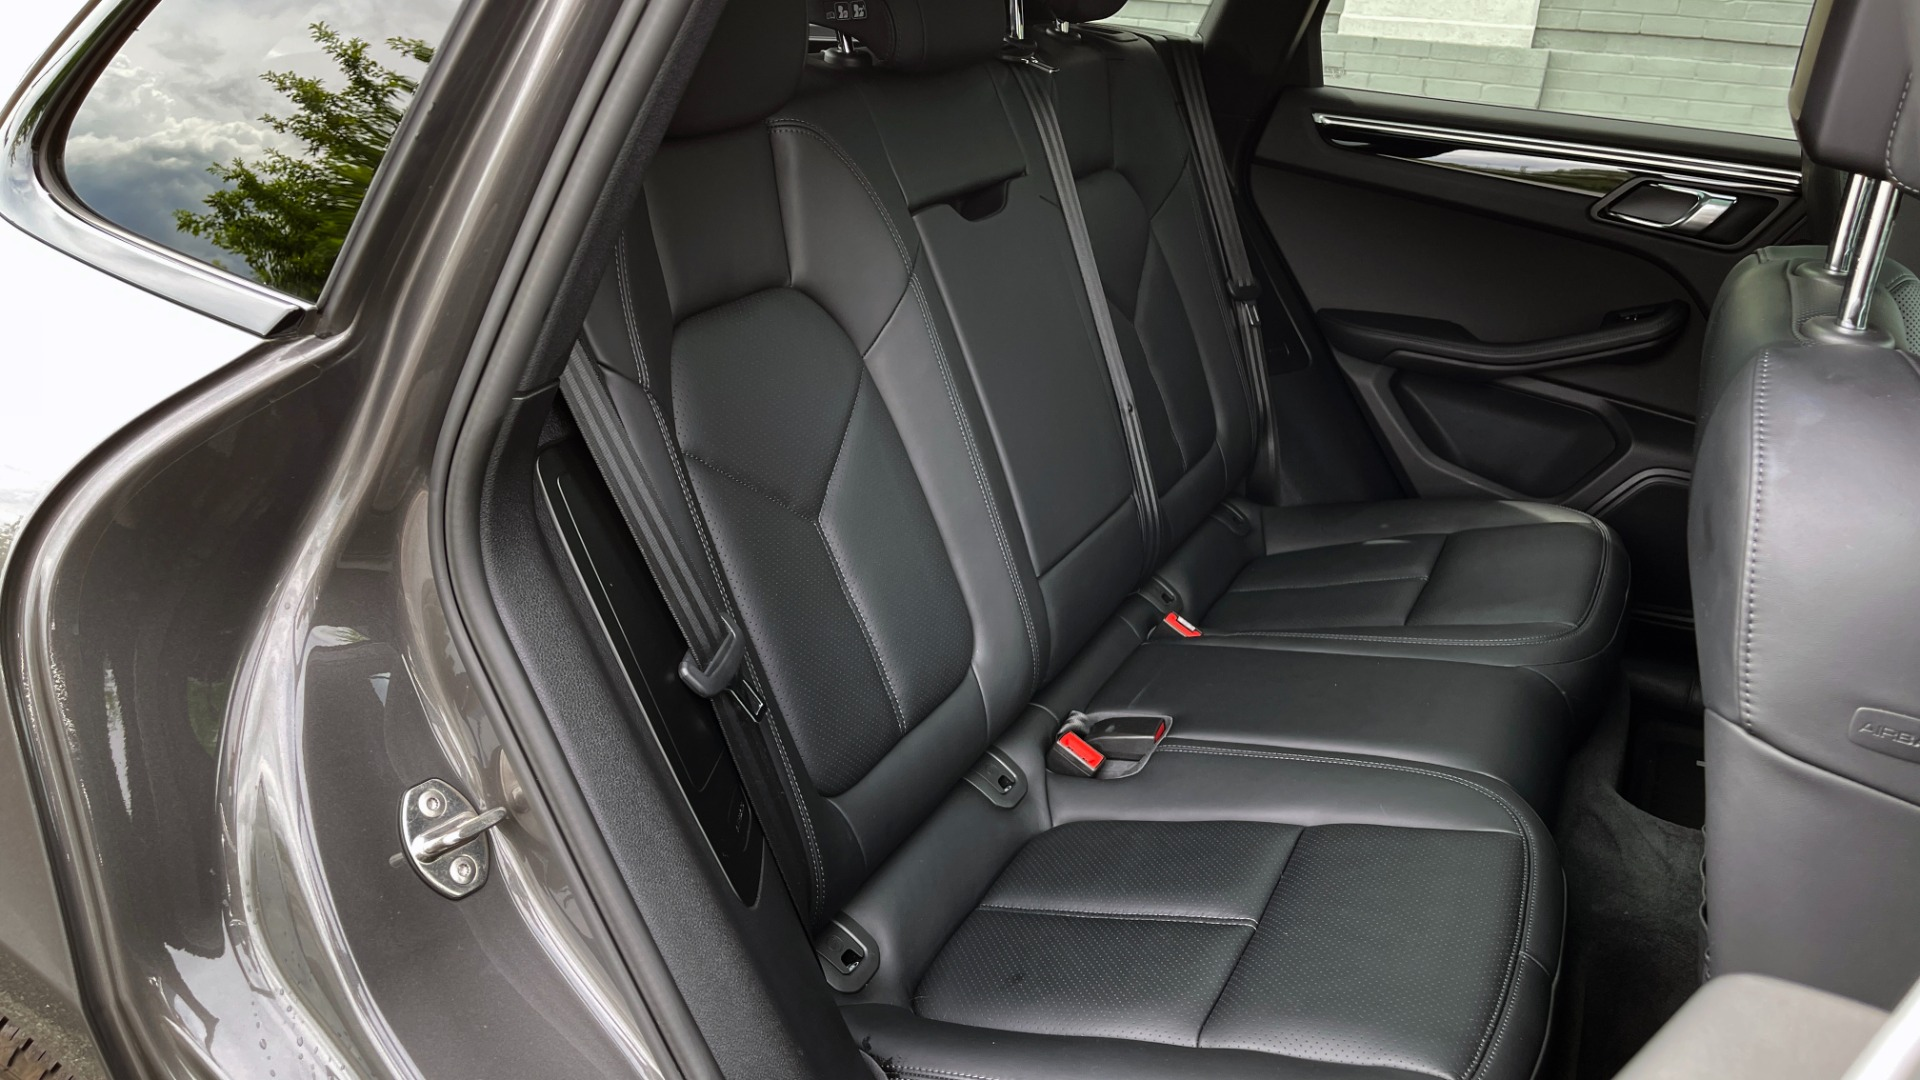 Used 2016 Porsche MACAN S PREMIUM PLUS / AWD / NAV / BOSE / SUNROOF / LCA / PARK ASST / INFOTAINMEN for sale $45,256 at Formula Imports in Charlotte NC 28227 66